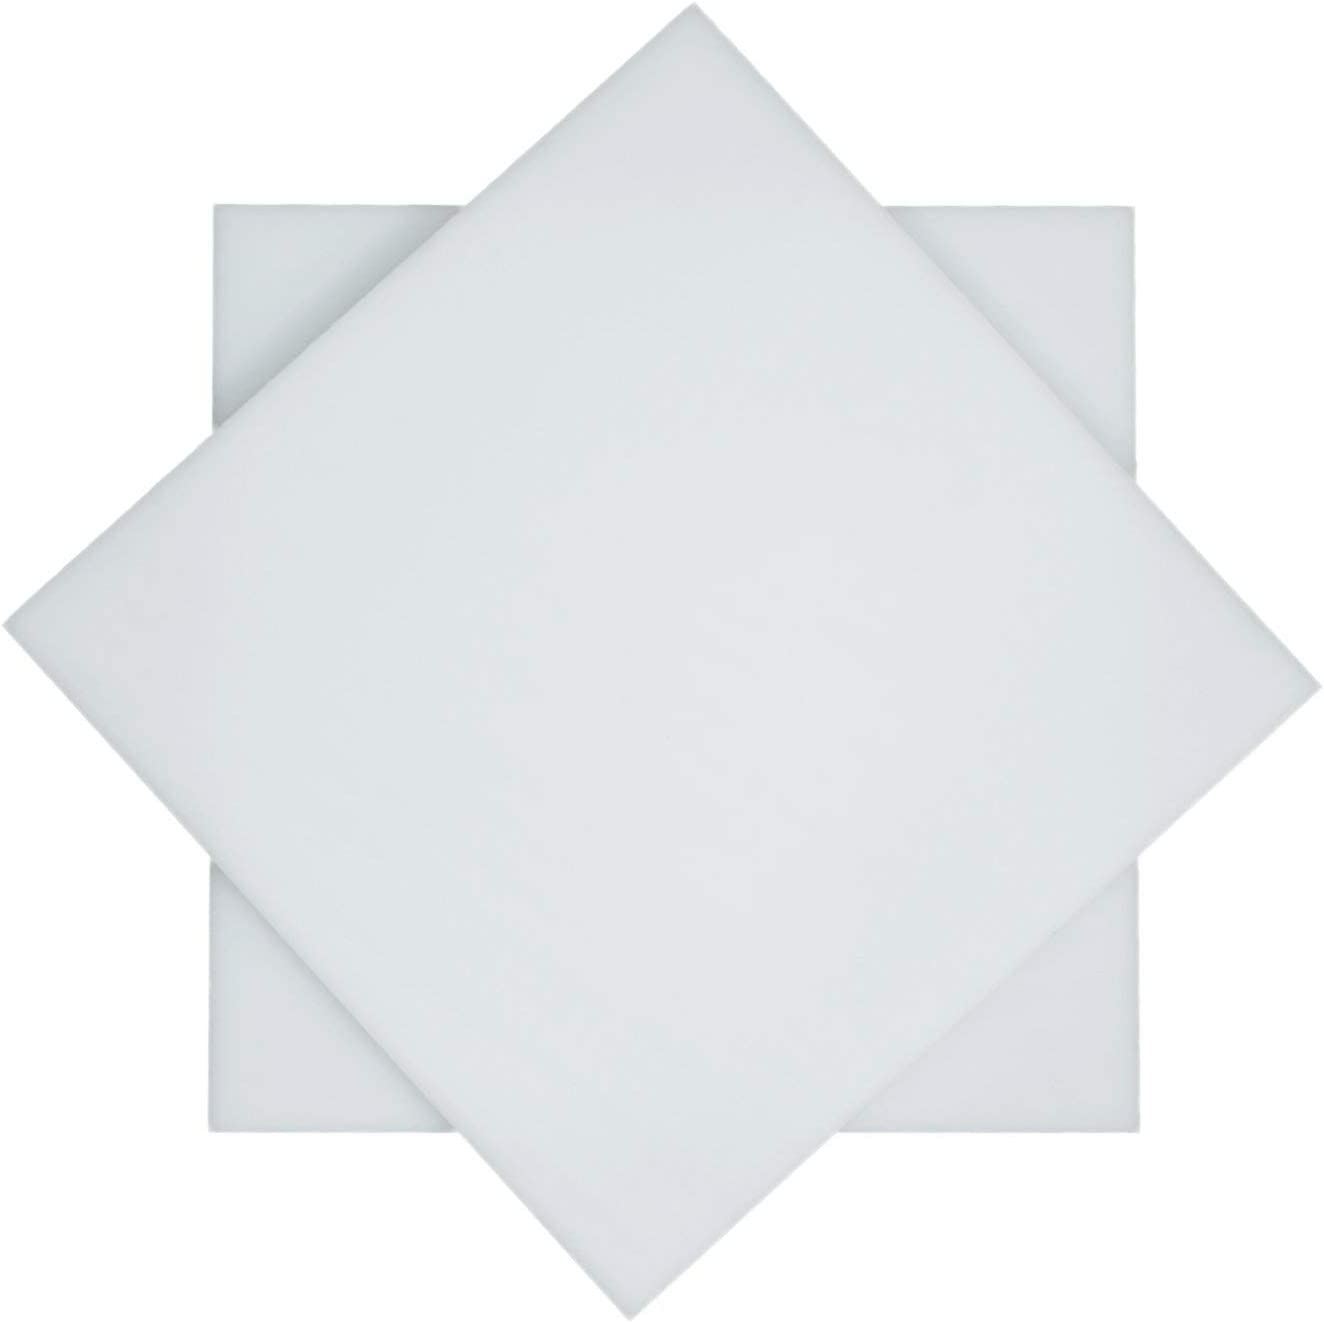 1//4 Inch Thick, 12 x 24 SOURCEONE.ORG Source One Premium UHMW Available in Every Size and Thickness,Opaque White Sheets Ultra High Molecular Weight Polyethylene